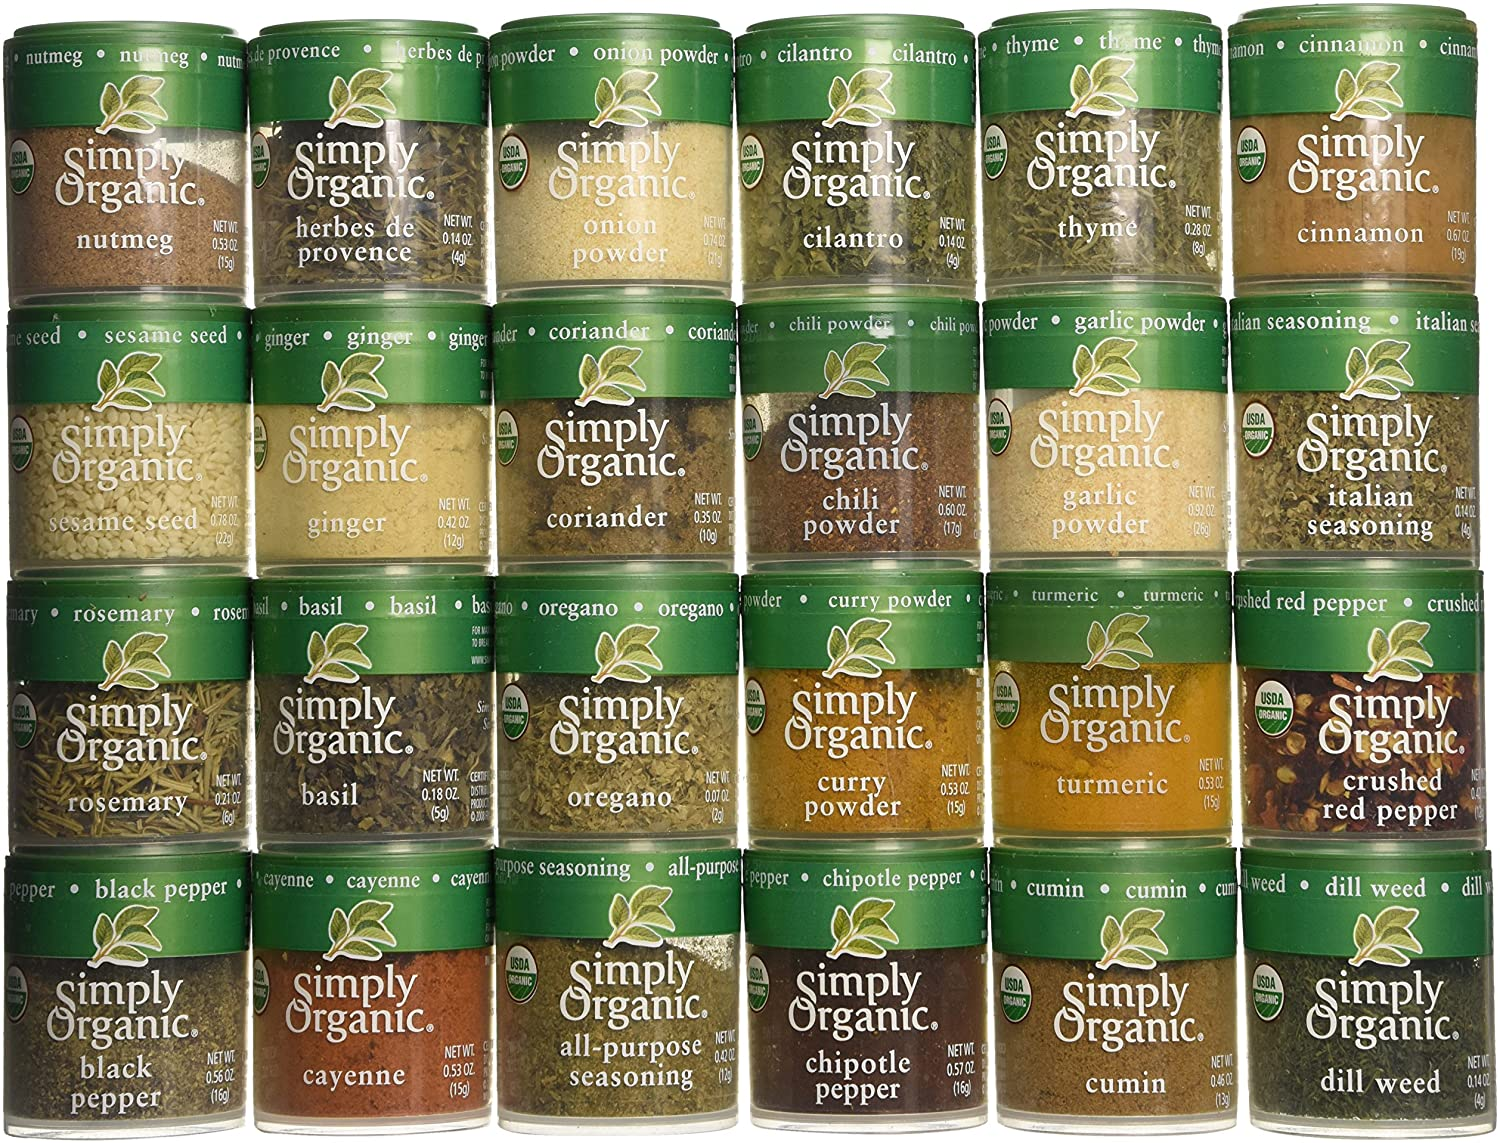 Simply Organic spice collection.